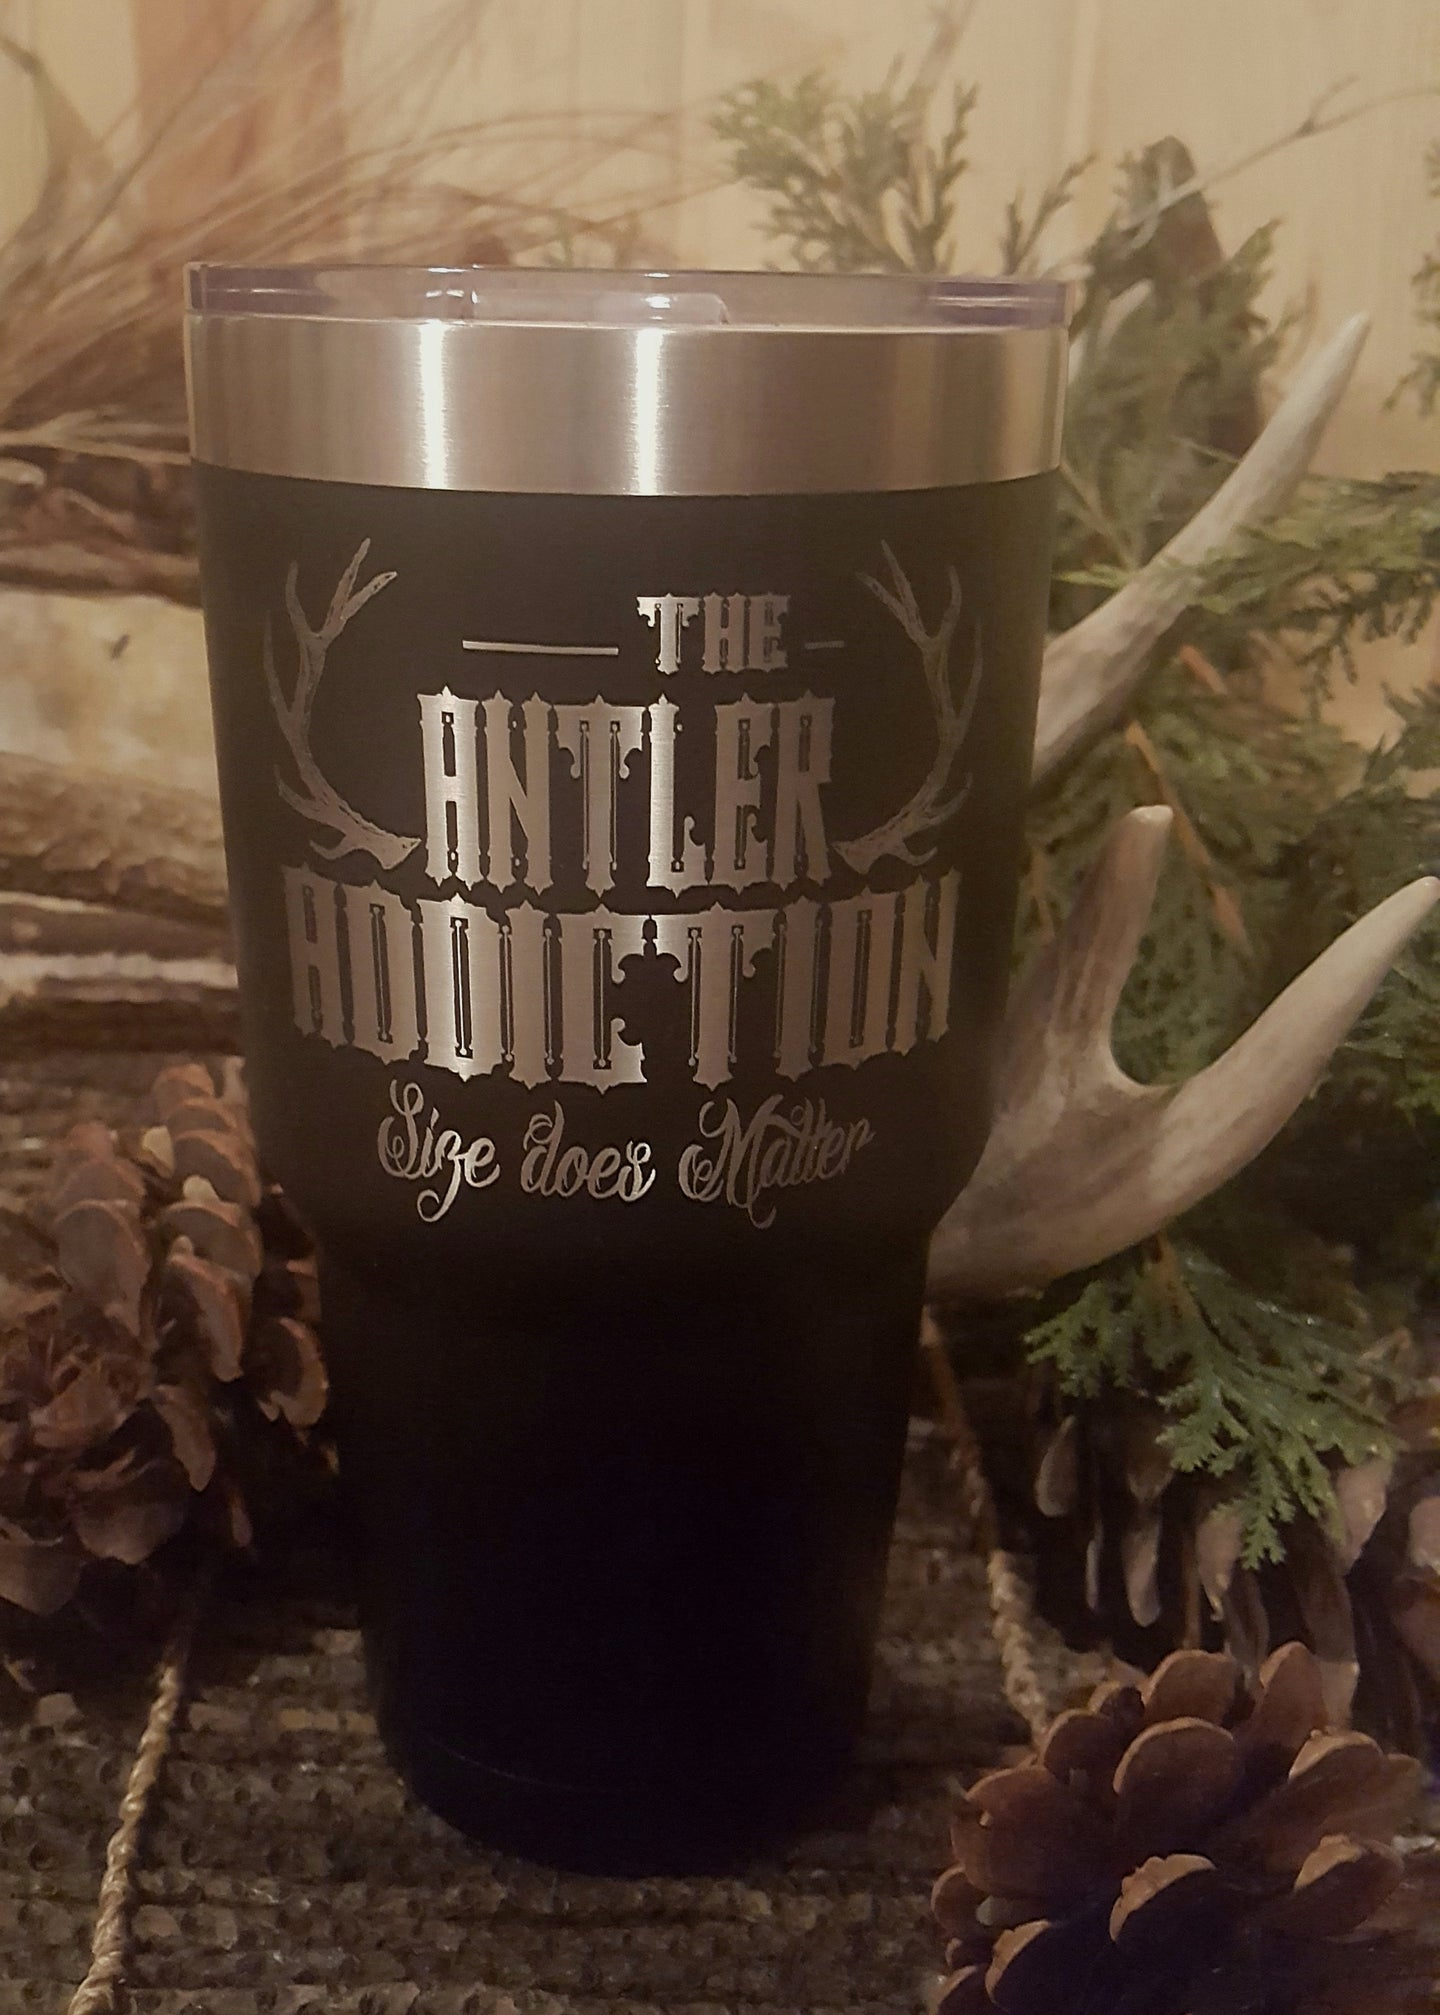 The ANTLER ADDICTION Size does Matter